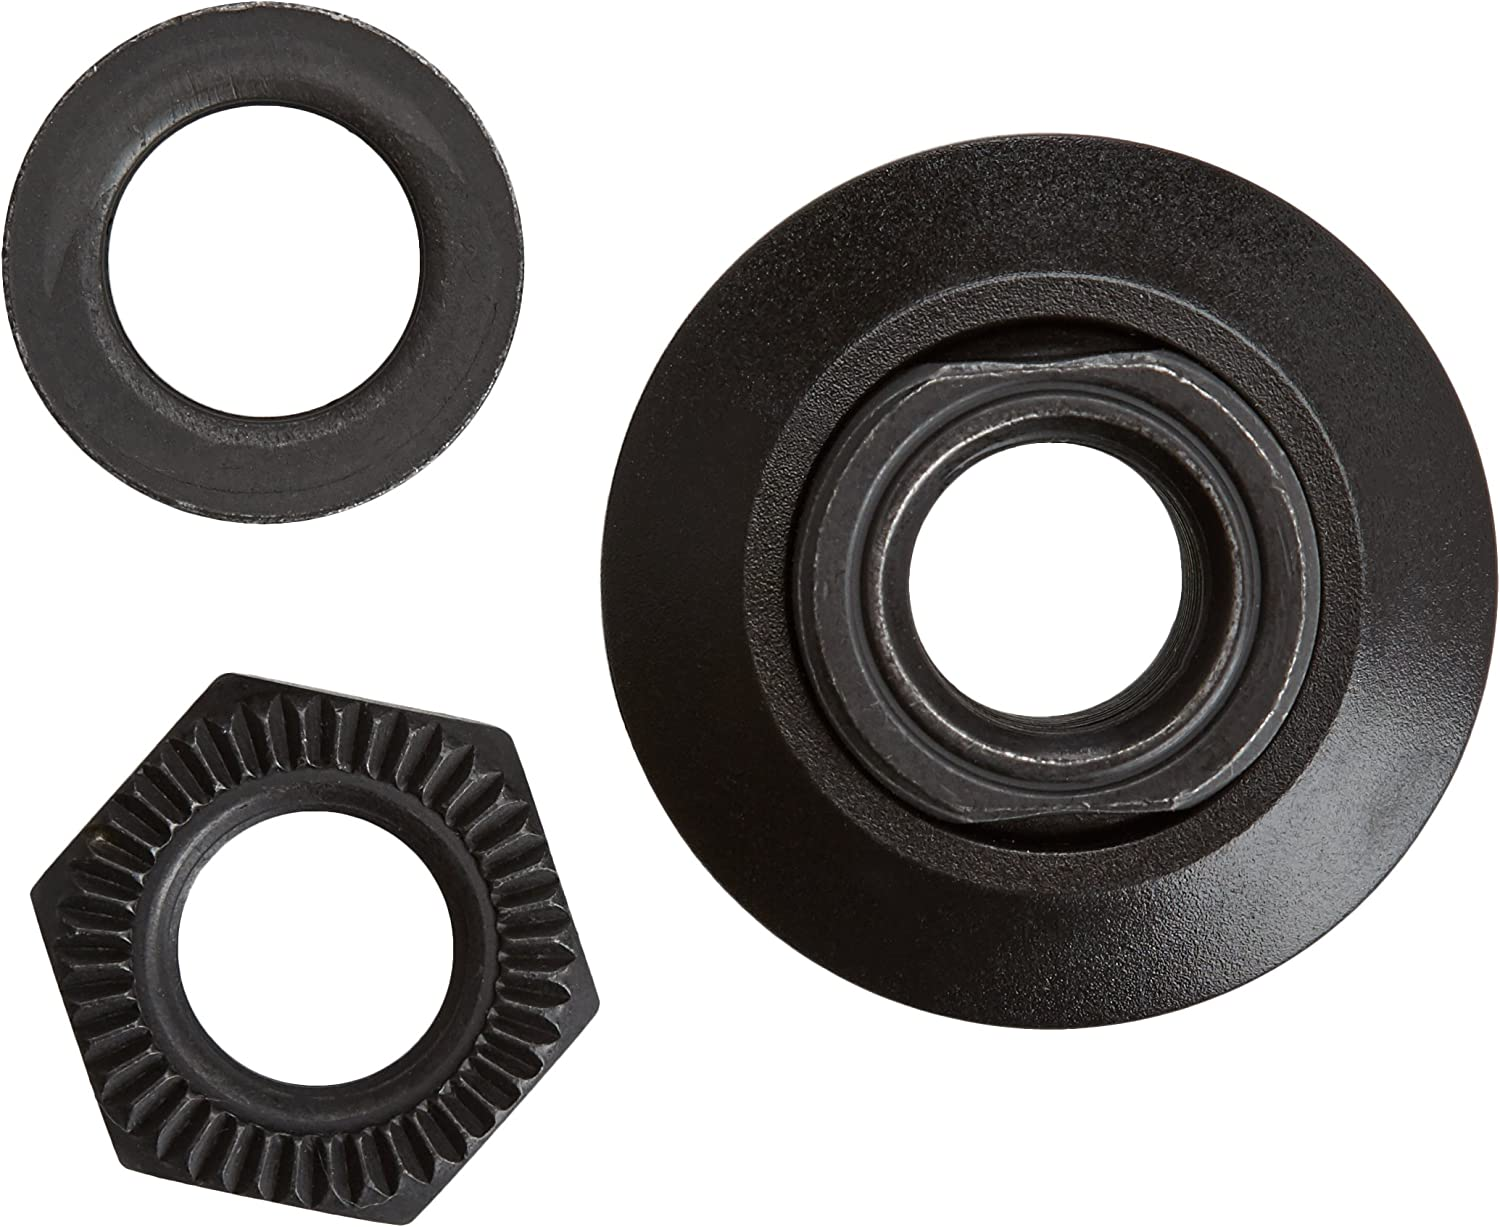 Other One Size SHIMANO Spares Unisexs 4EW 9810 Bike Parts